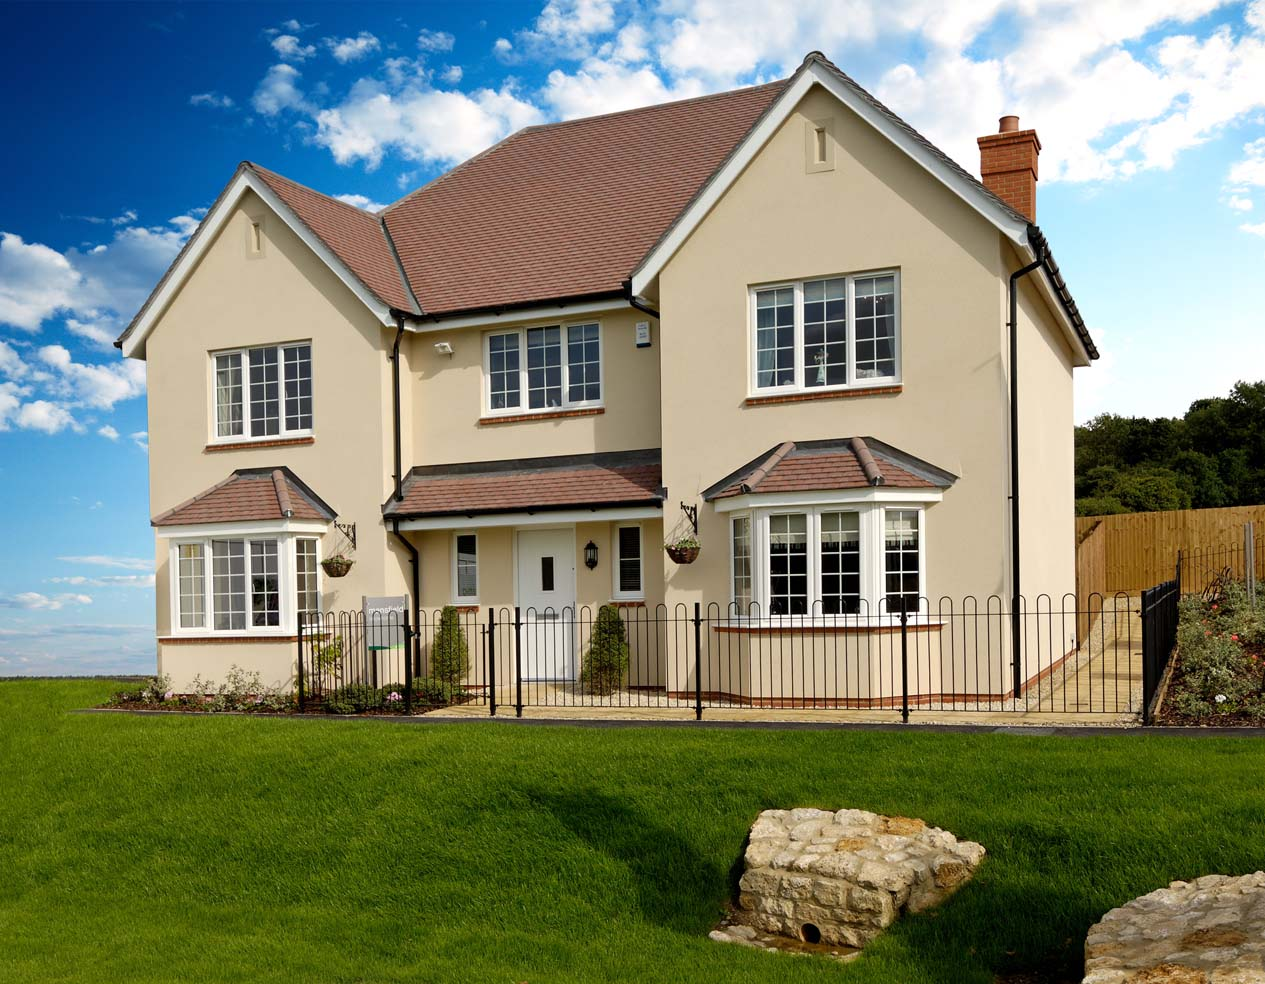 All You Should Know About The New House Tax Rebate  Home Decoration  Family & Lifestyle Advice